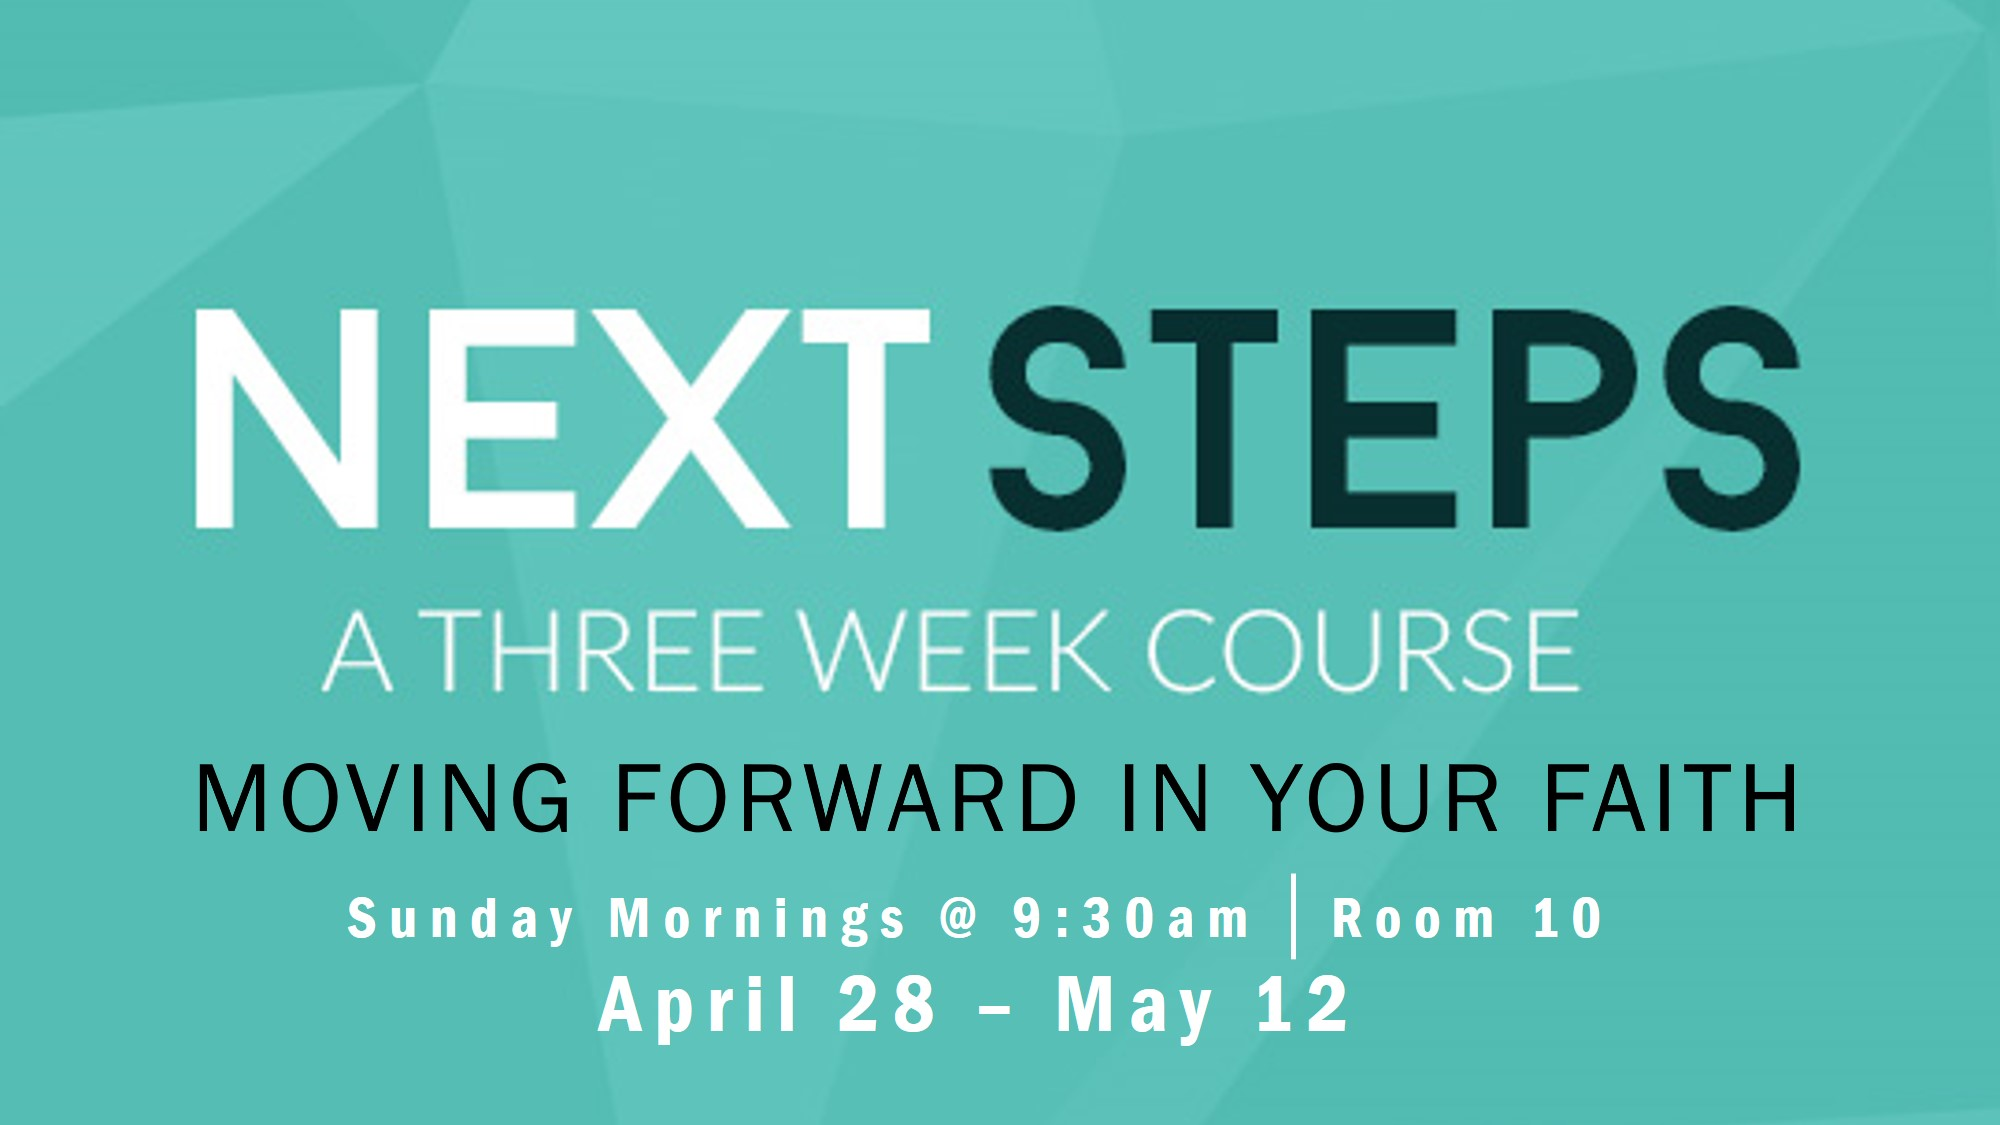 Next Steps  is a 3 week small group experience designed to give people the practical tools necessary to grow in their relationship with Jesus. Next Steps is also a safe and conversational environment that allows people to ask any faith questions they may have.   The Experience is design for two types of people: 1. Those who are new to their faith 2. Those who are renewing their faith